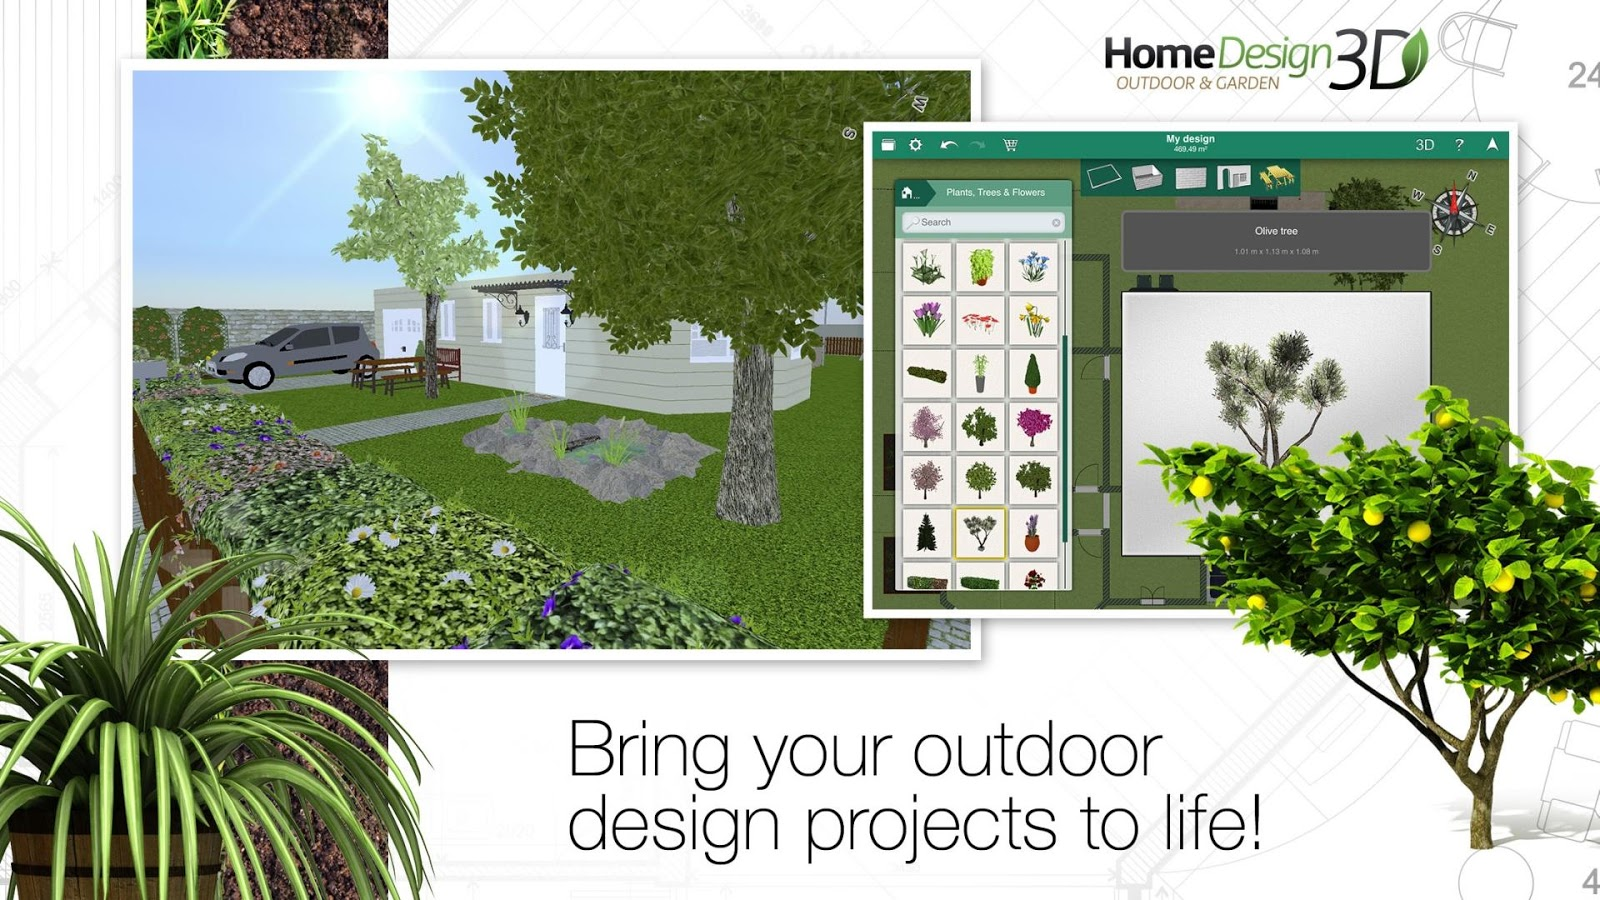 Home Design 3D OutdoorGarden Slides Into The Play Store For All